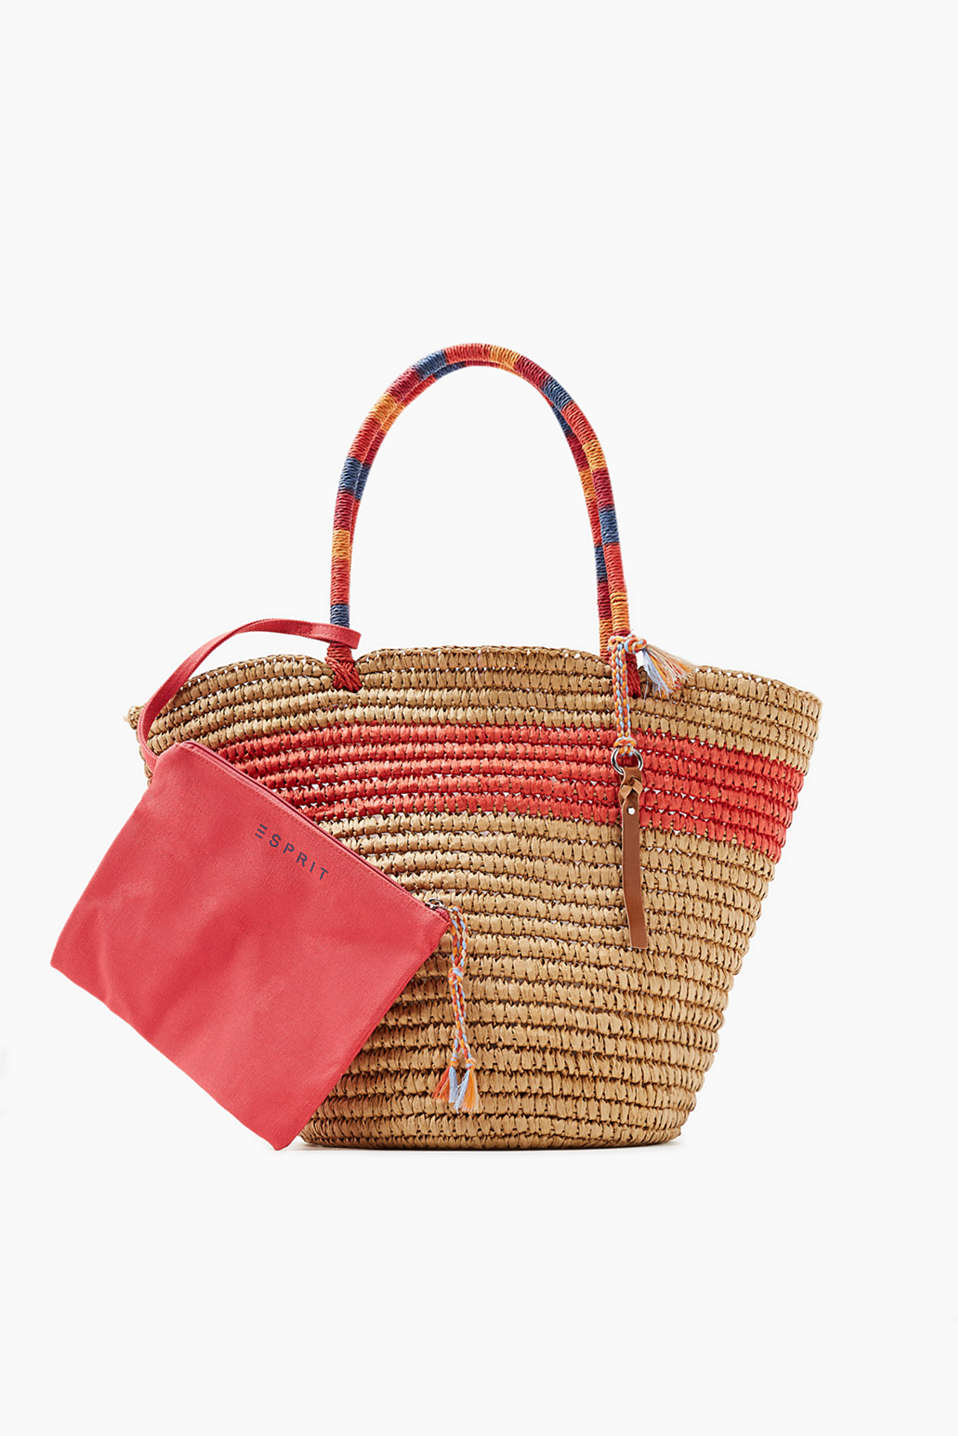 Shopper in a summery look with an attached zip bag